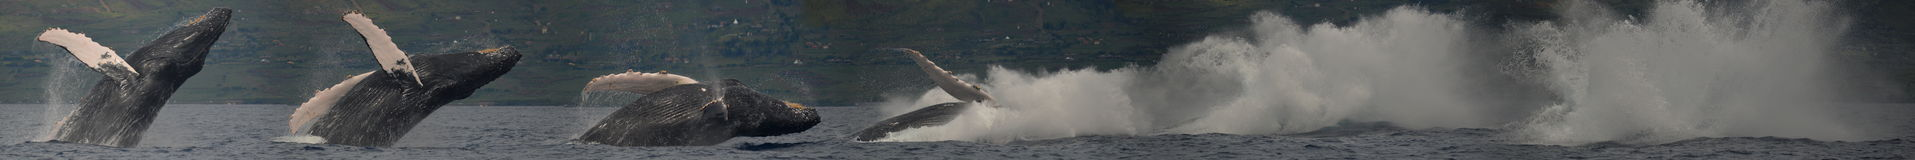 Panorama Of Humpback Whale Breaching Stock Photos